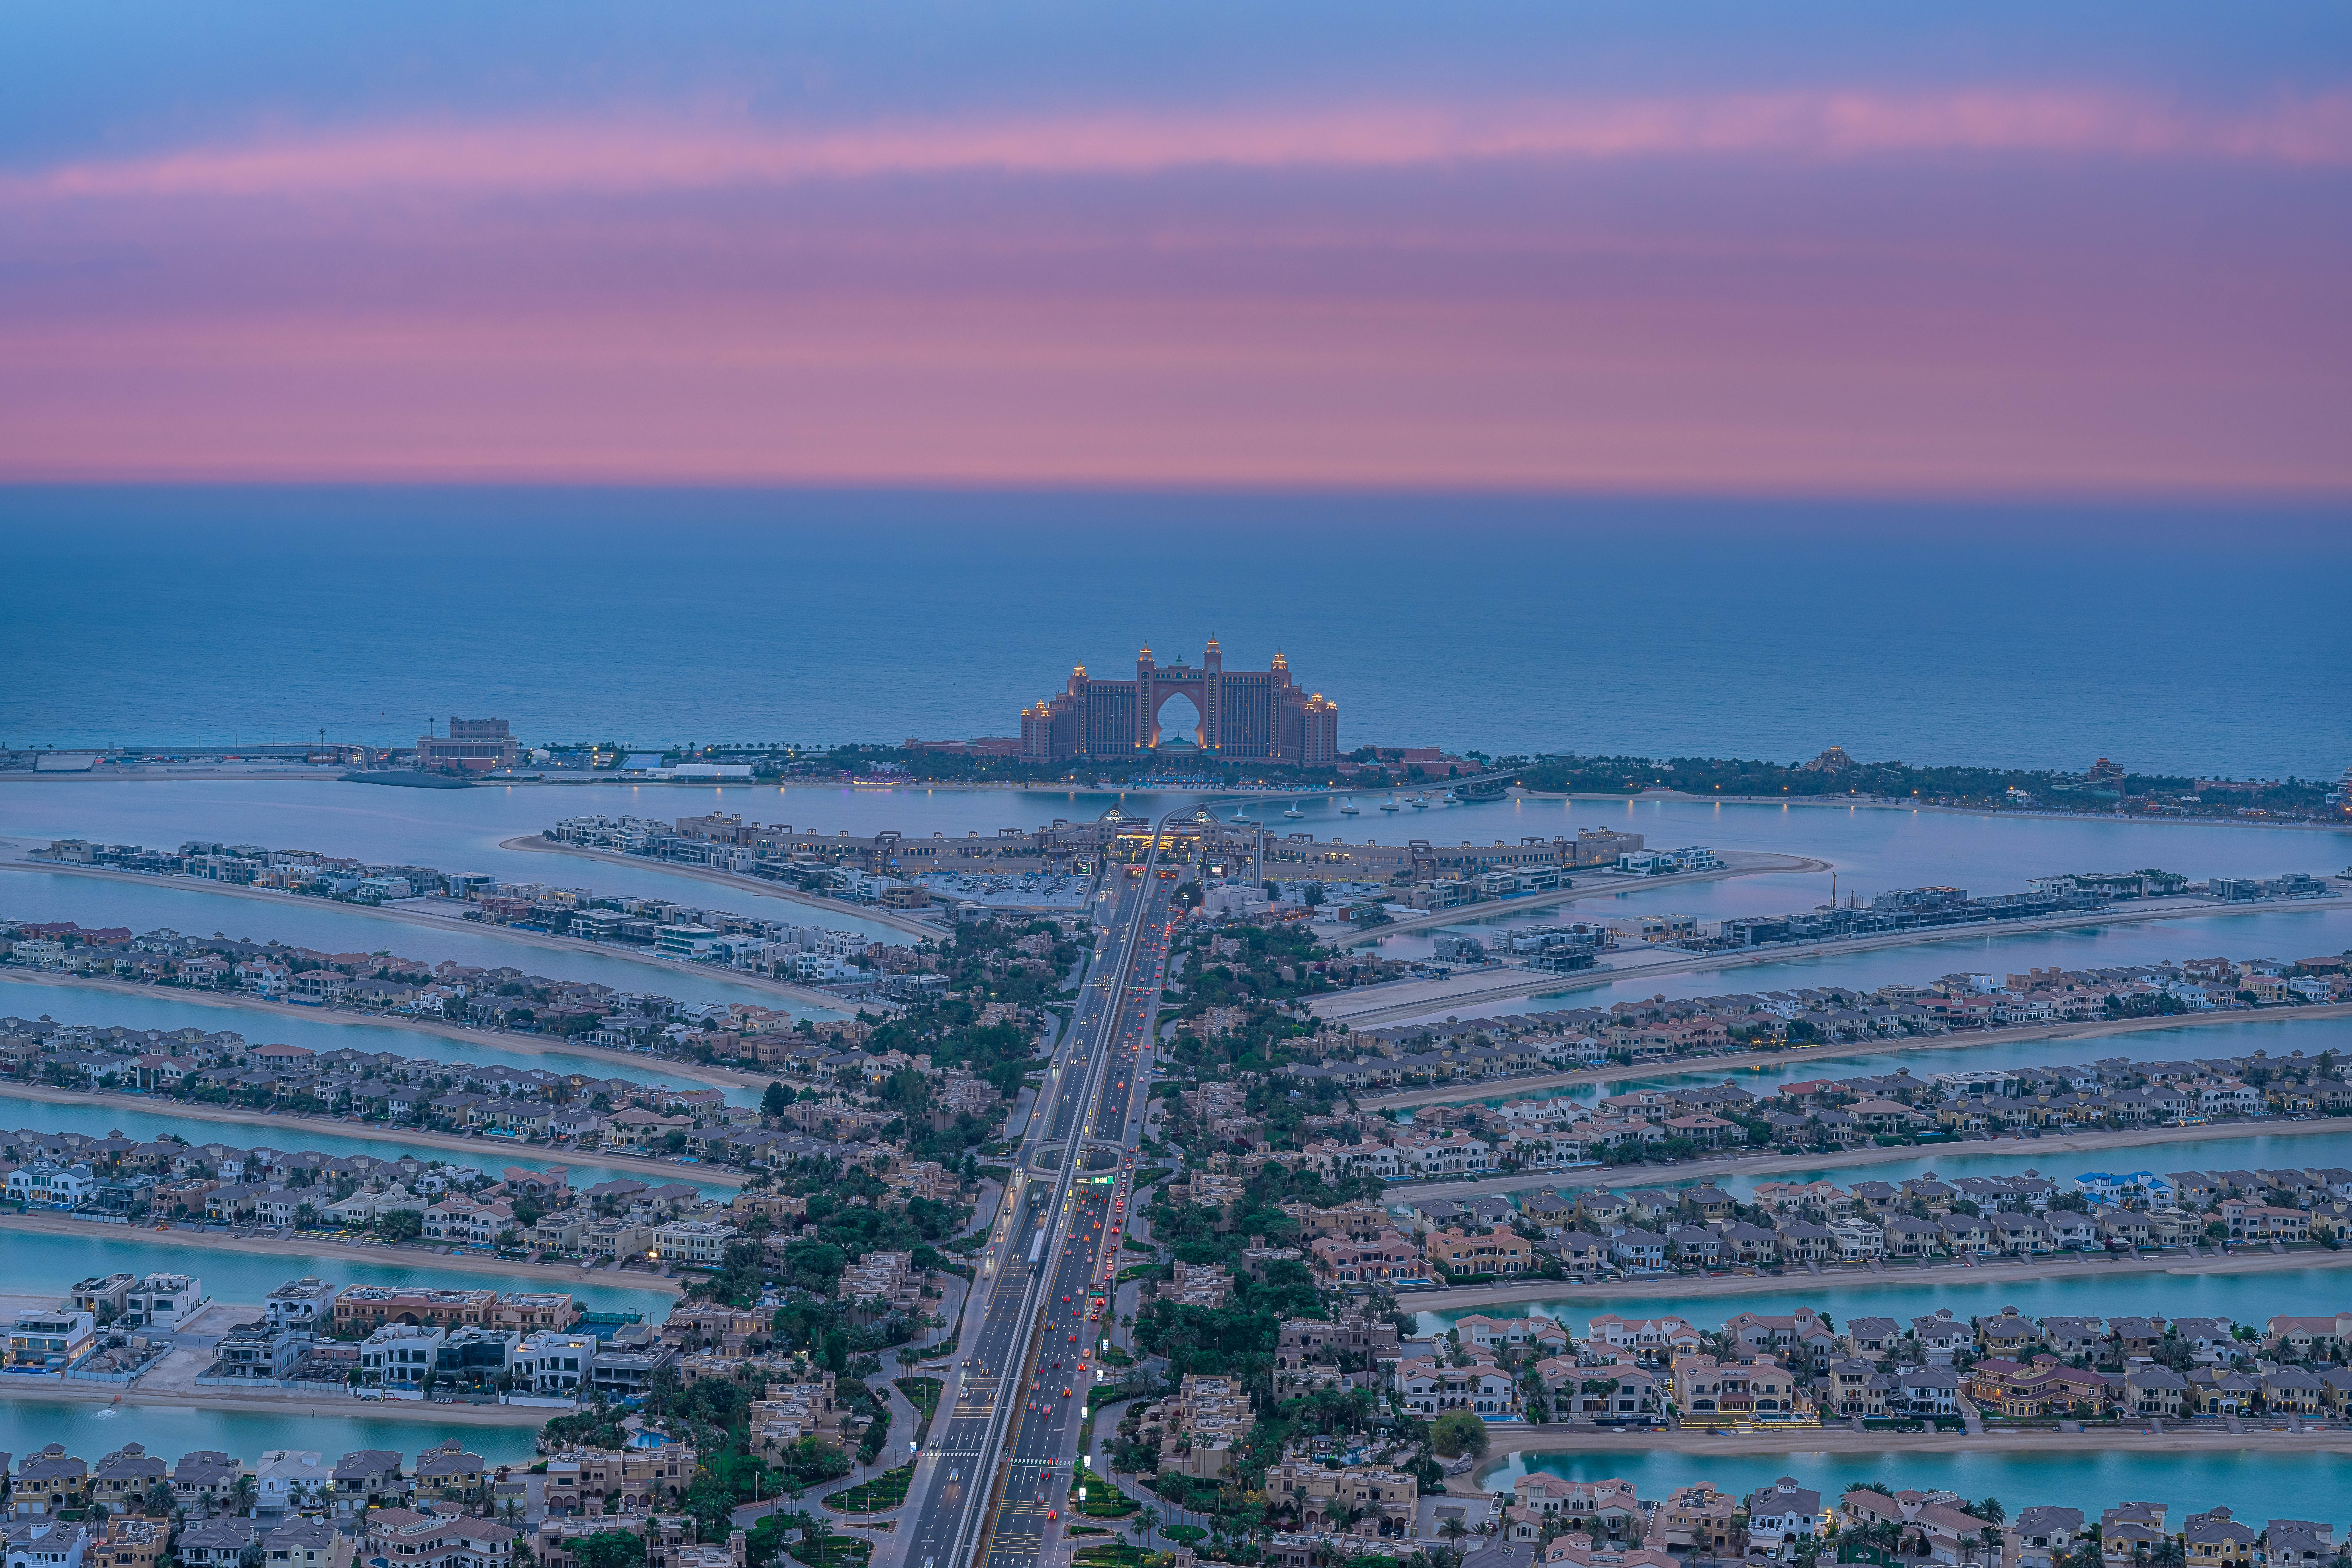 The new and incredible view of The Palm and Atlantis Hotel